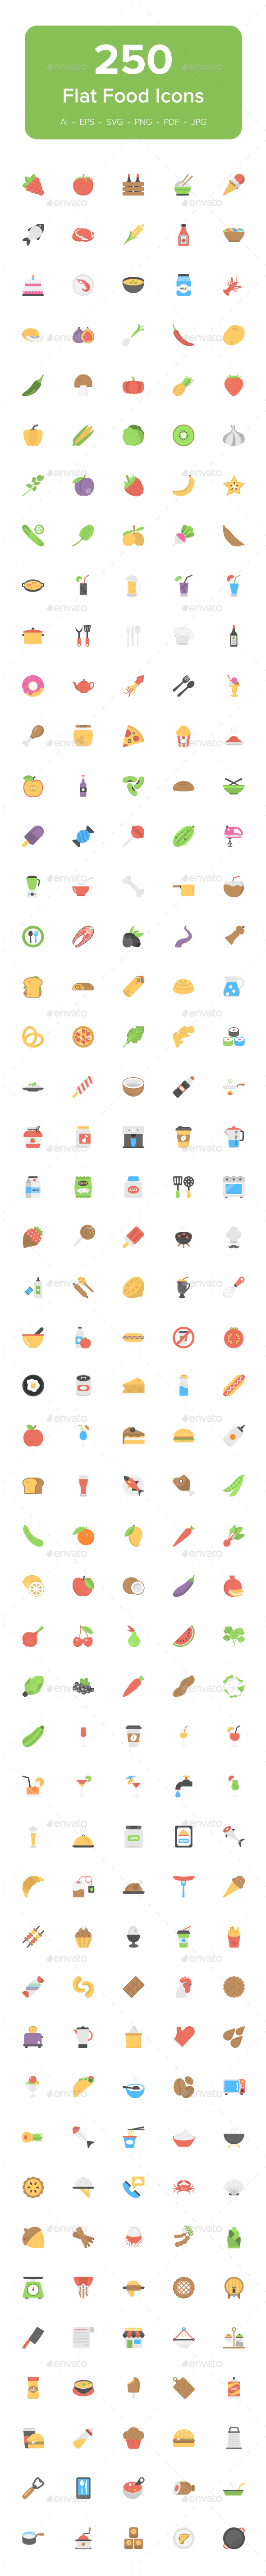 250 Food Flat Vector Icons - Icons